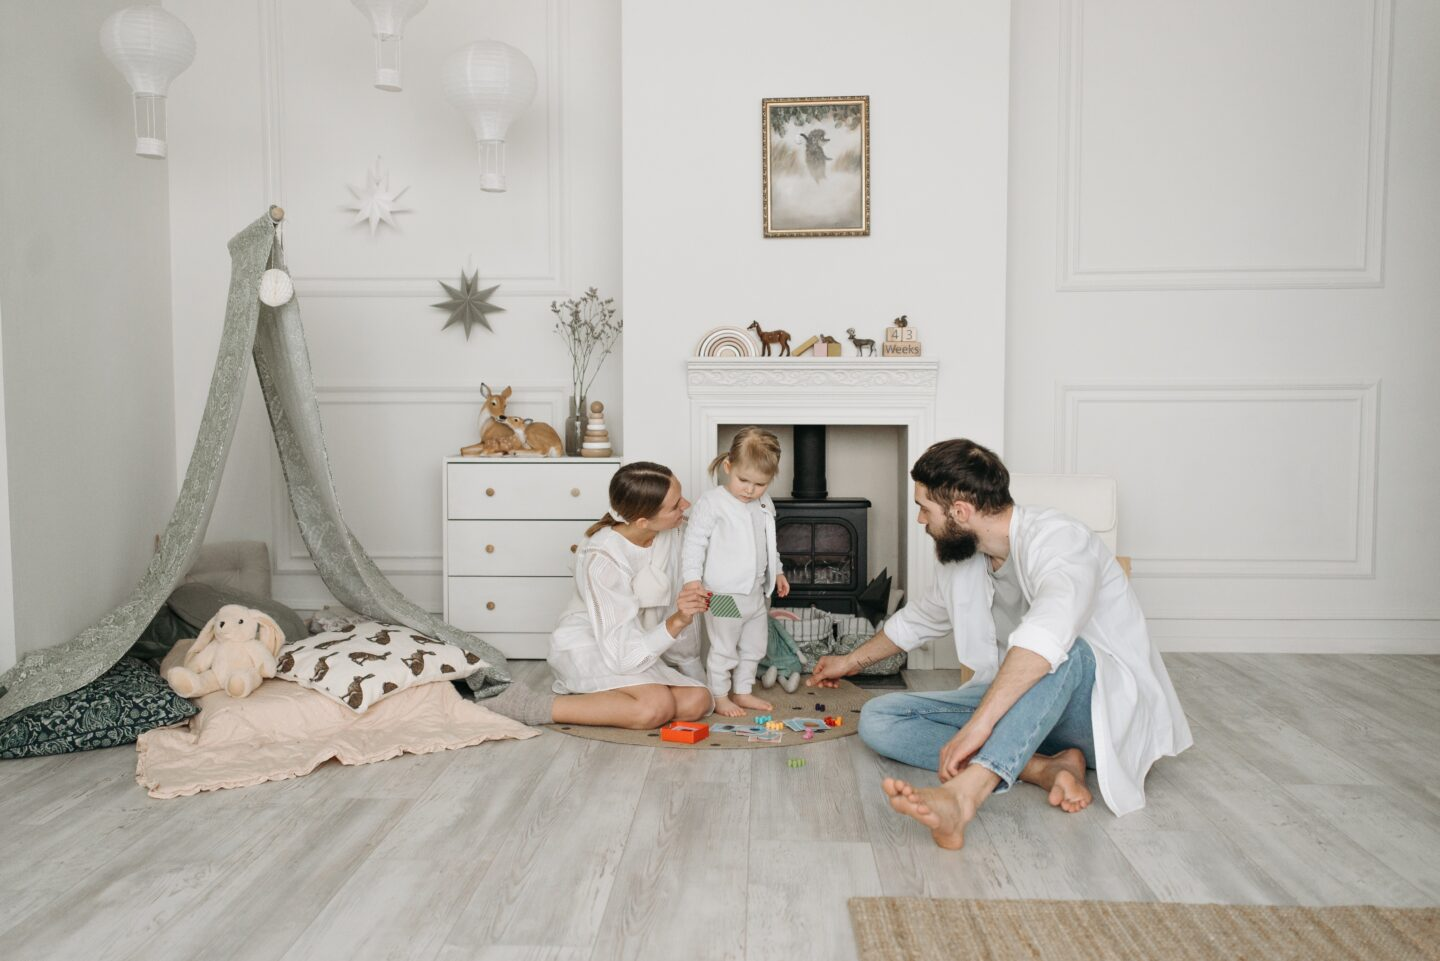 Family of three playing on the floor of a child's bedroom with teepee in the background